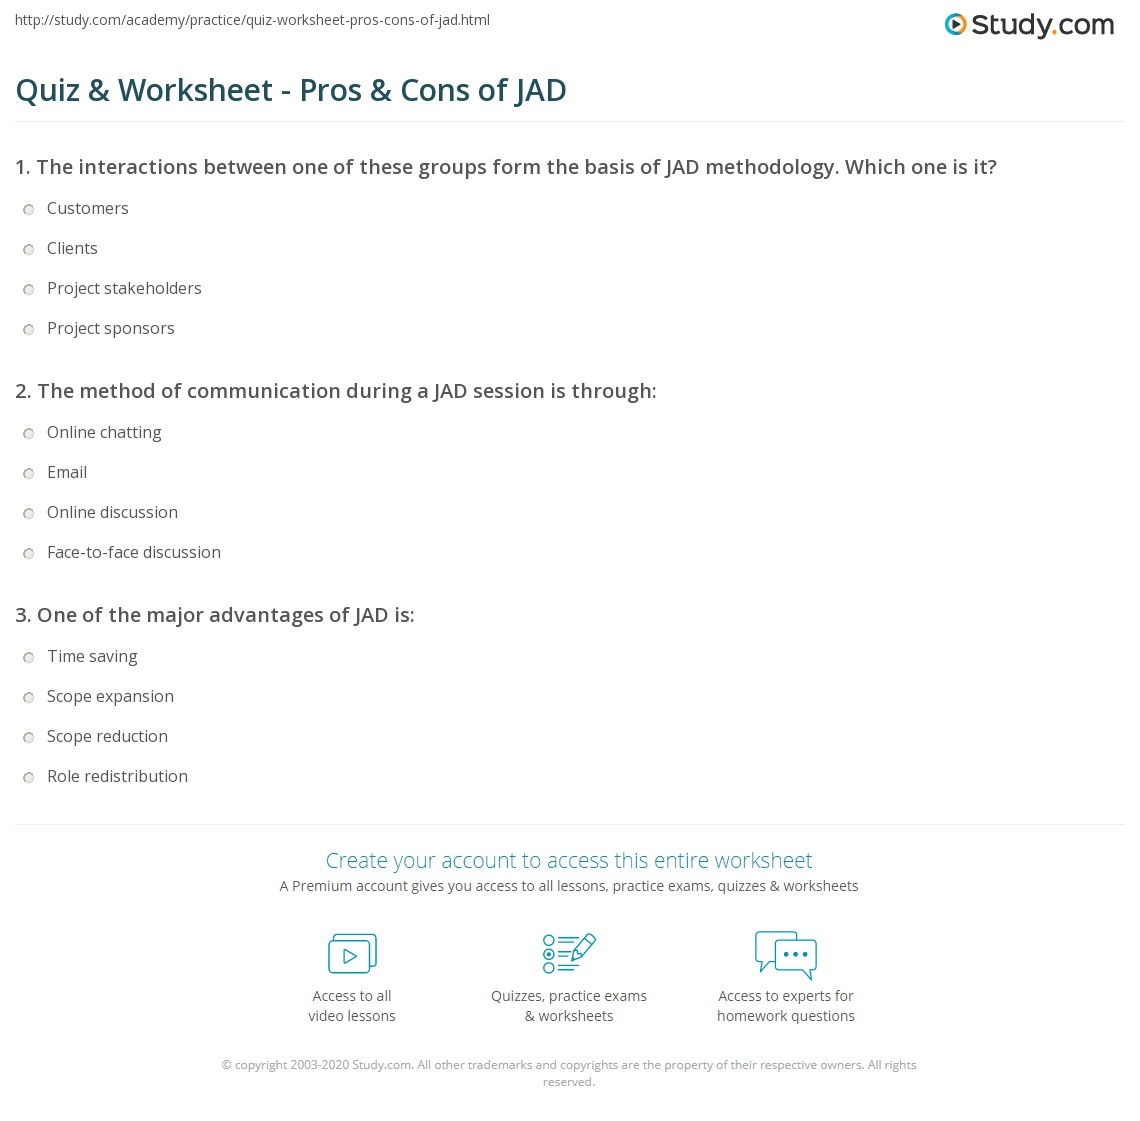 Quiz Worksheet Pros Cons Of Jad Study Com